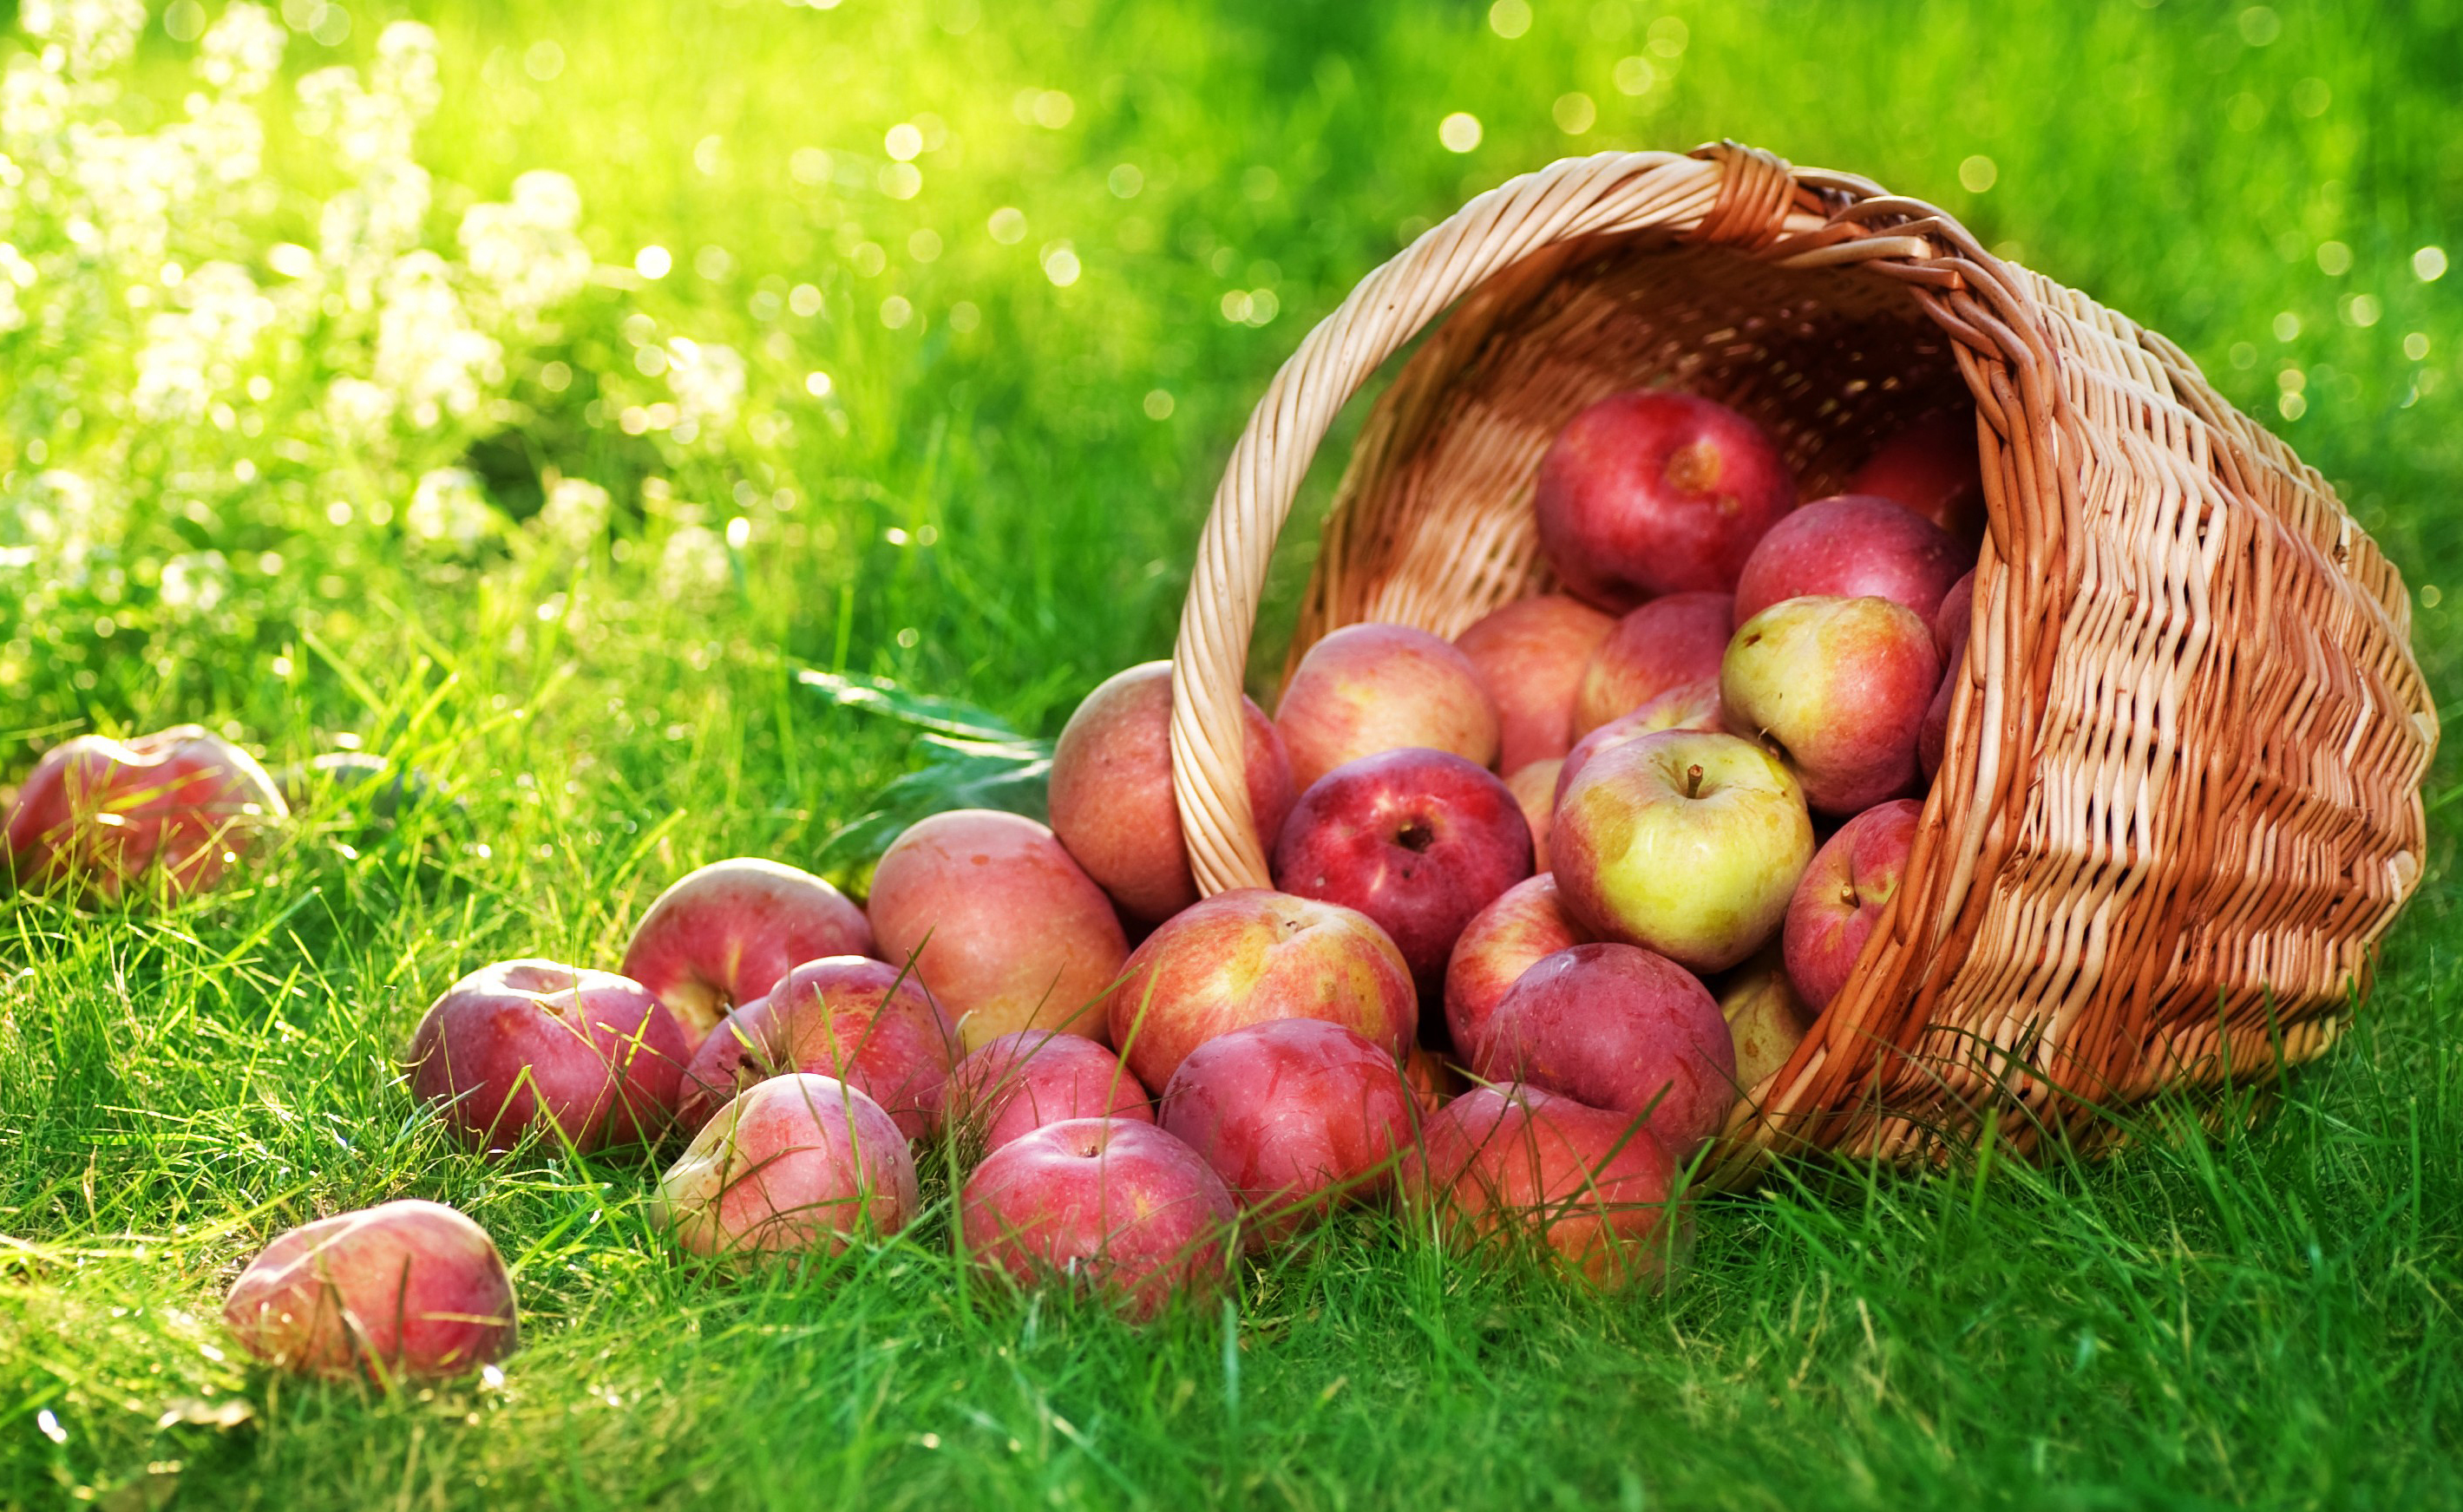 Apple Fruit Bucket on Grass Wallpapers 2839x1743